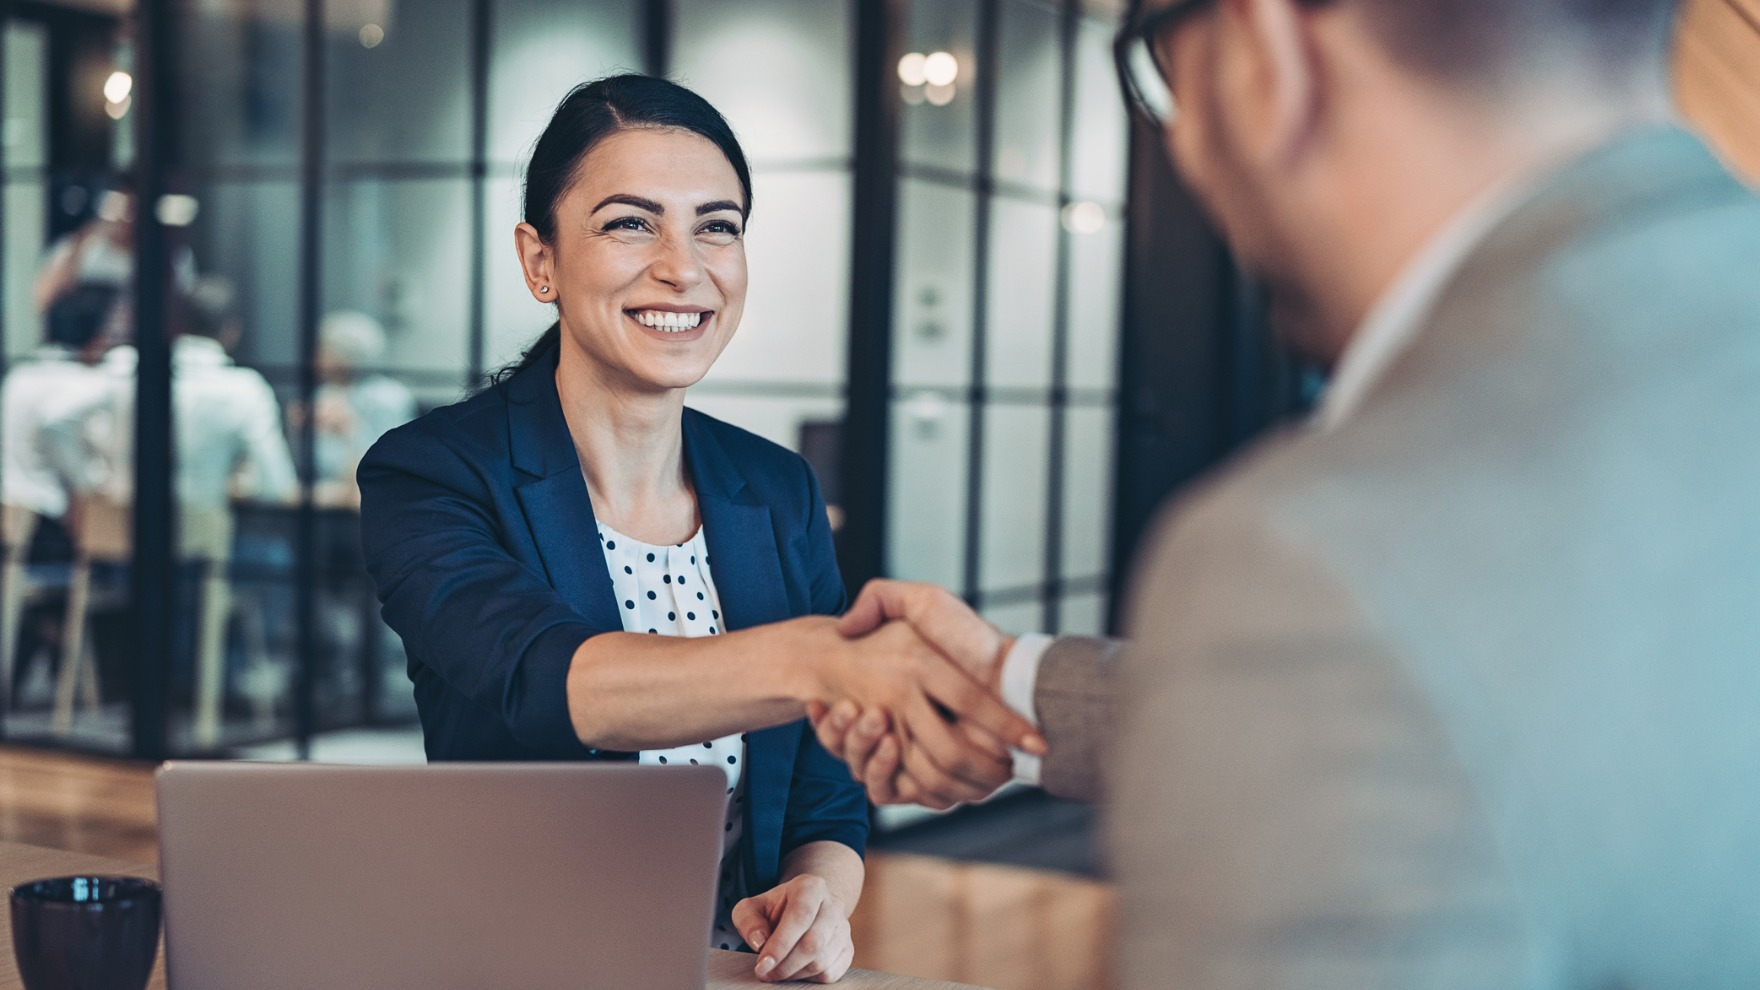 How Salespeople Can Build Better Customer Relationships